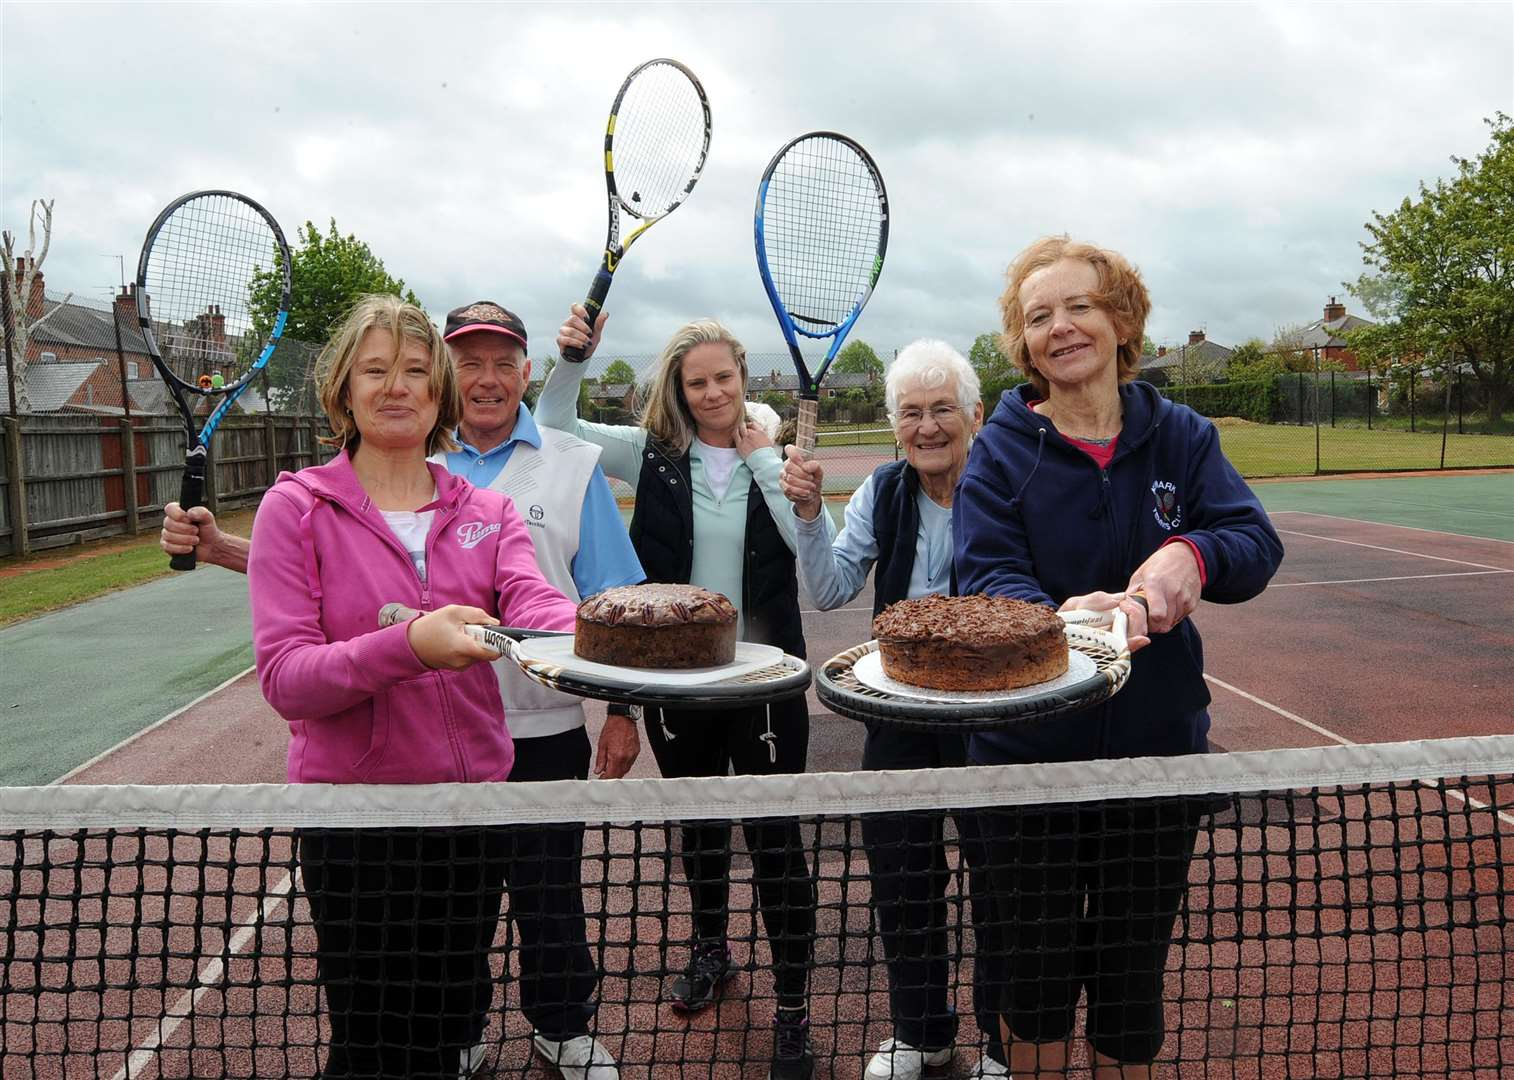 Newark Tennis Club held a fundraising day along with their open season tournament .Pictured are some of the fundraisers with cake at the event l-r Annie Davies,Andy Cole, Sara Jackson,Barbara Woodcock and Lynne Hare. (9325129)